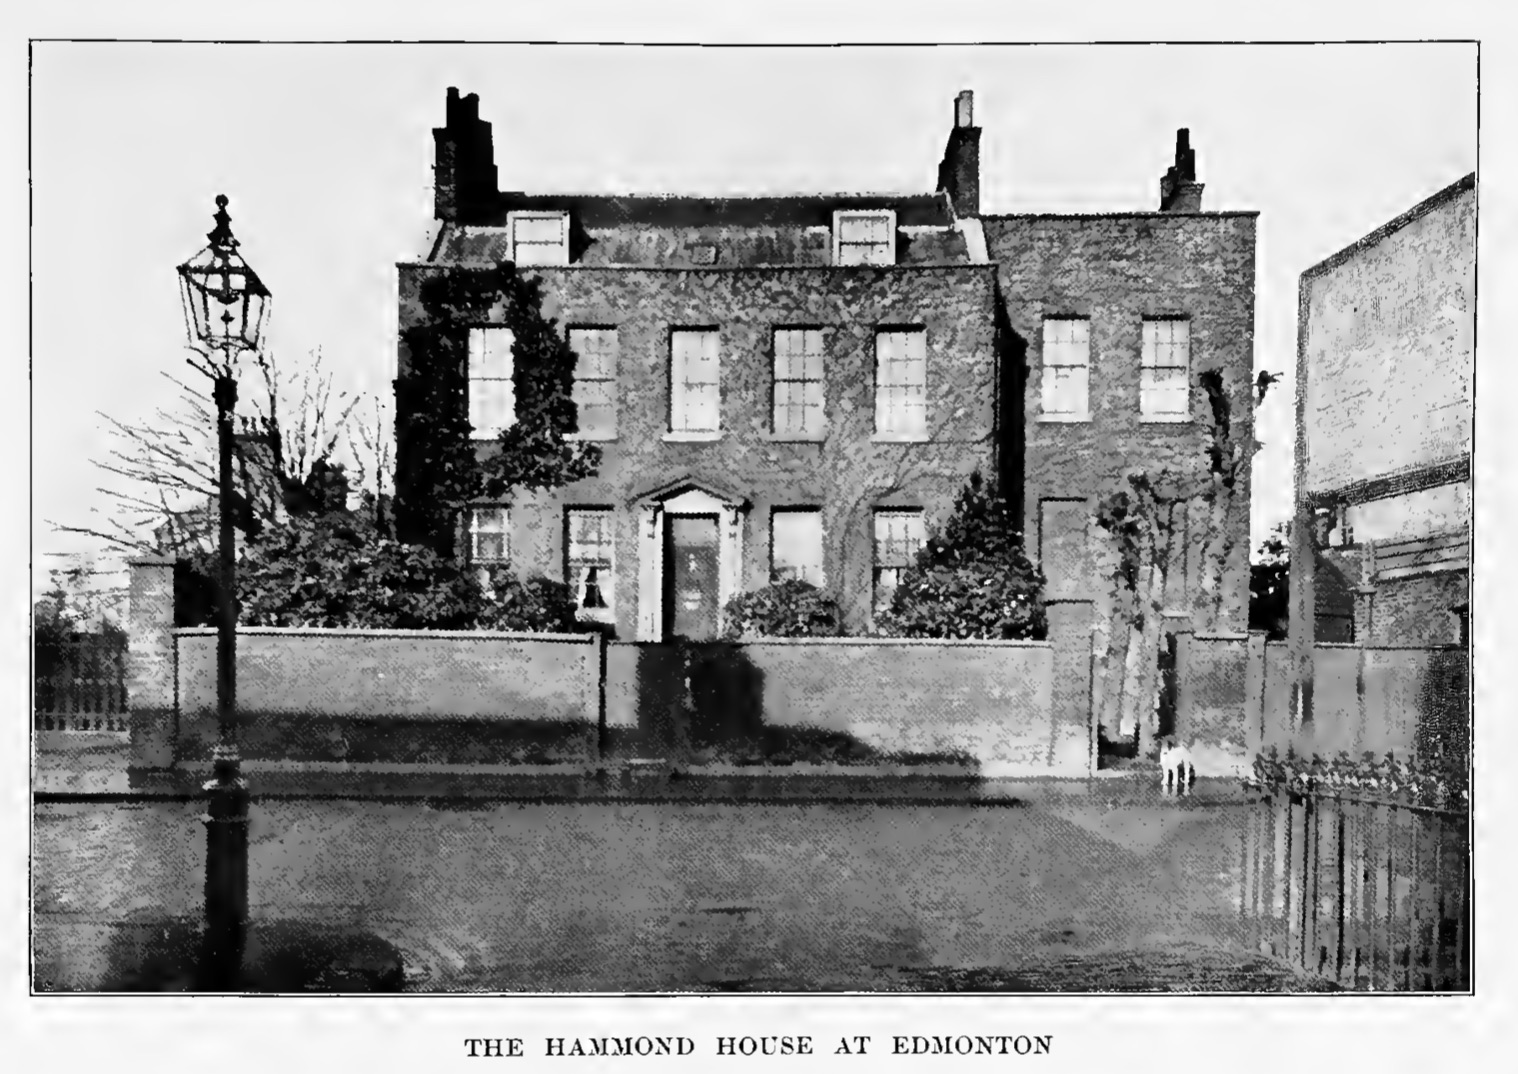 Hammond House at Edmonton, from Albert Elmer Hancock's 1908 biography of Keats         (click to enlarge)